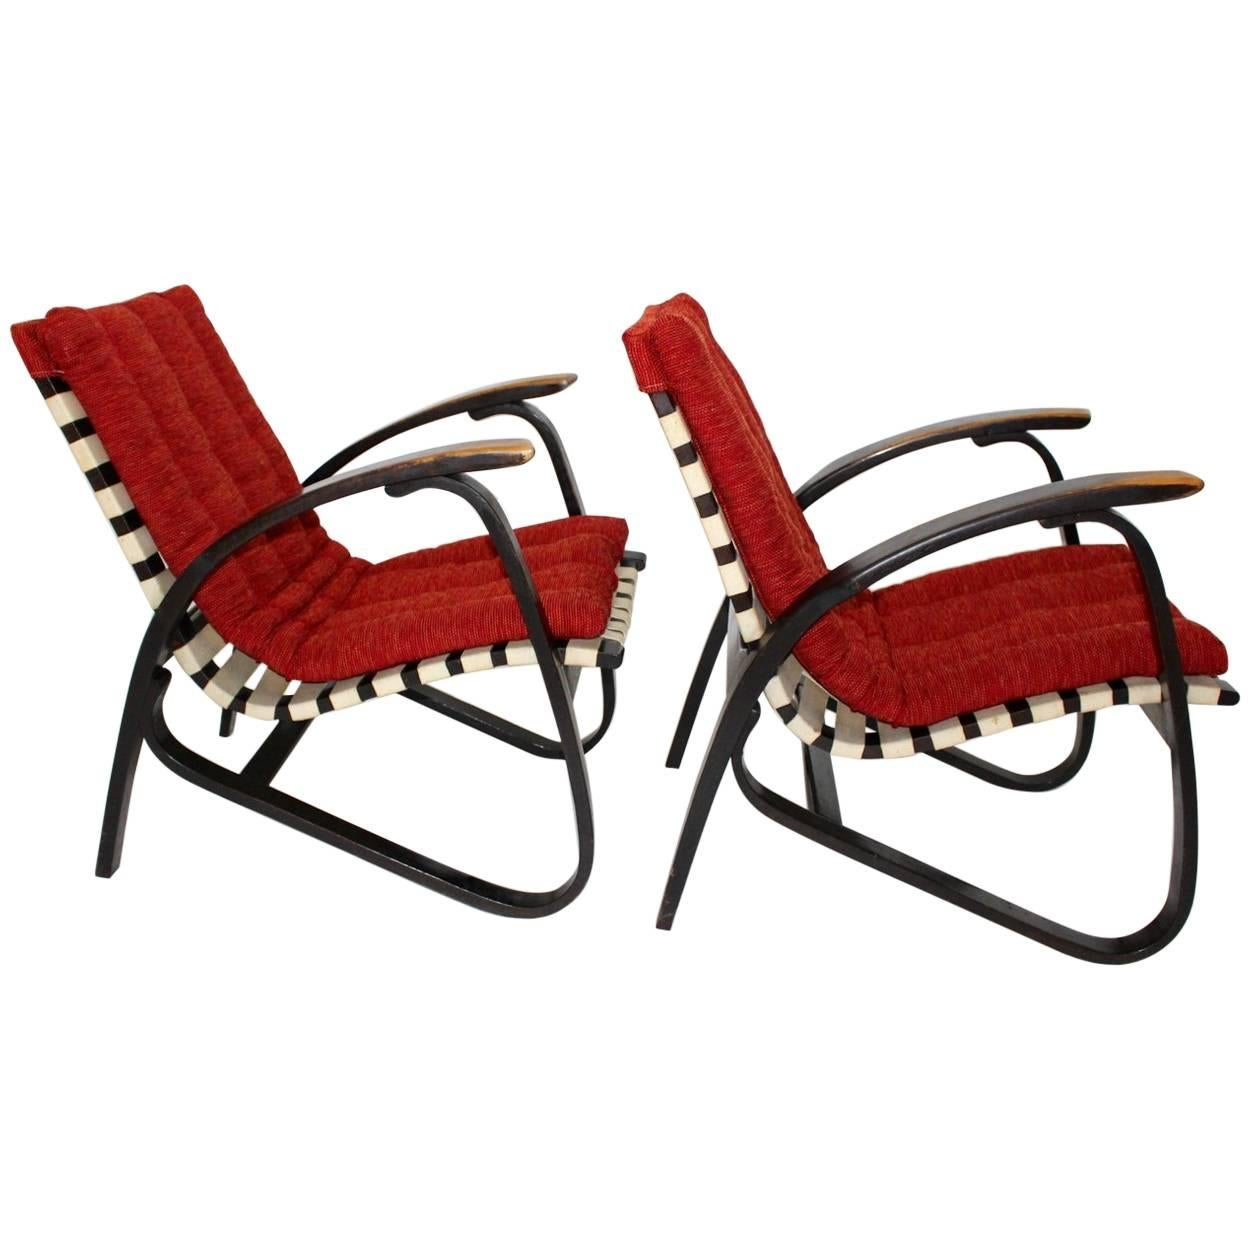 Red Pair Of Art Deco Bentwood Lounge Chairs By Jan Vanek, 1940s